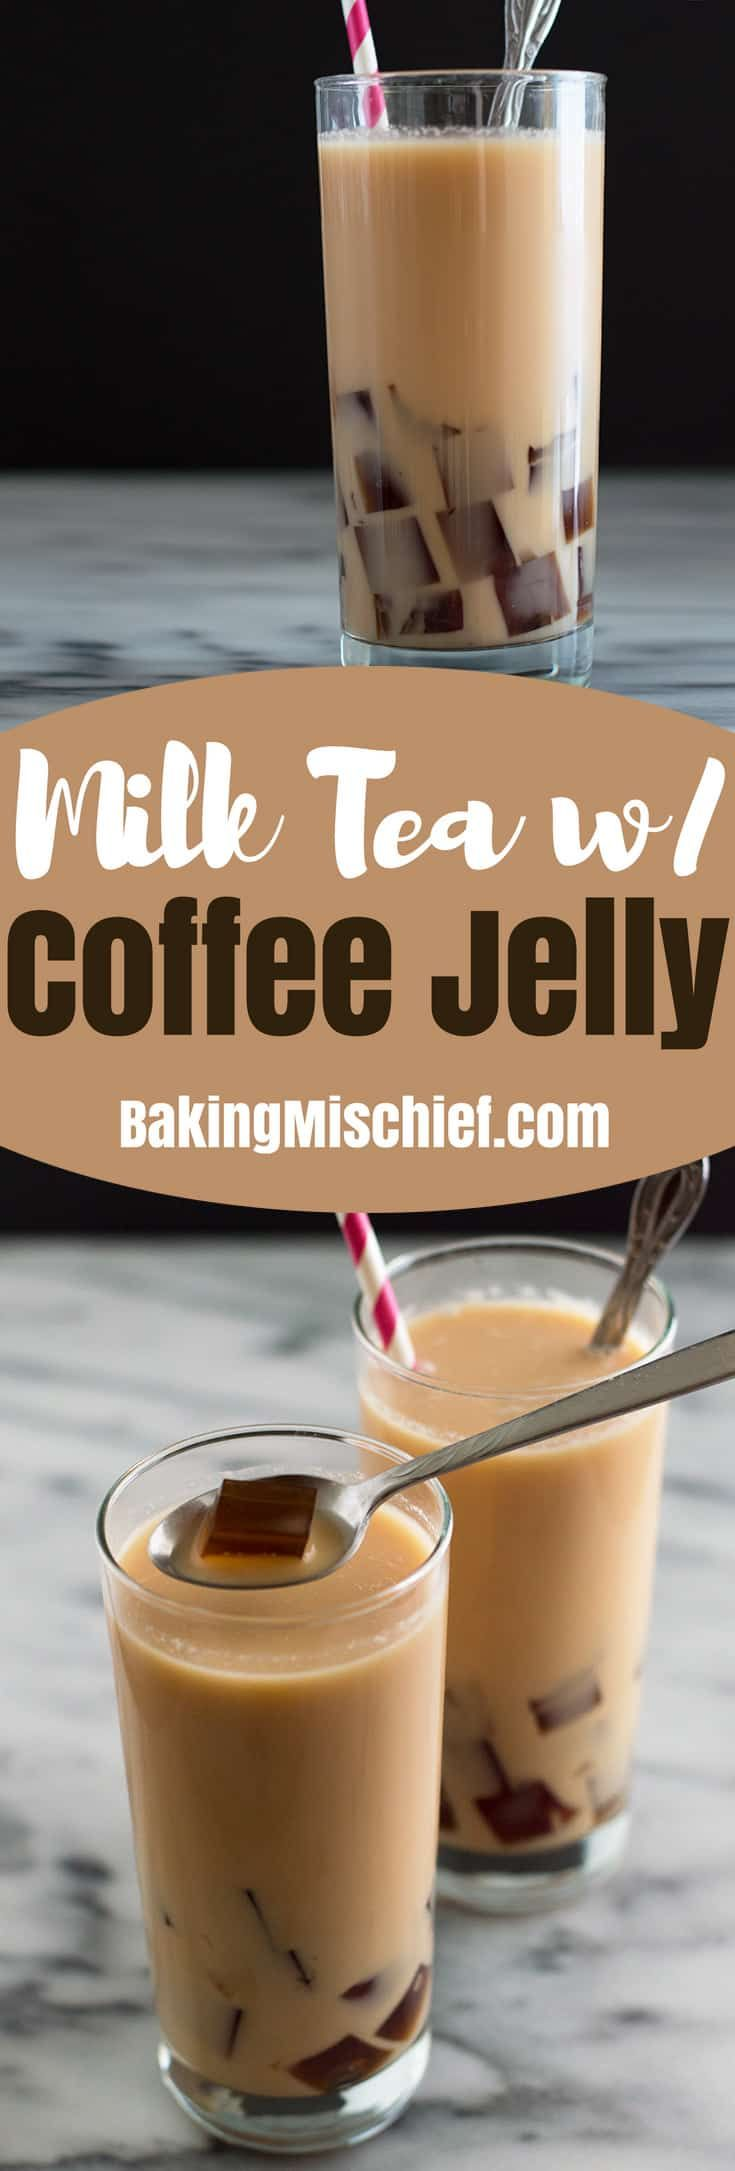 Cool and refreshing milk tea with coffee jelly is so easy to make and fun to drink. Make some and impress your friends. From BakingMischief.com